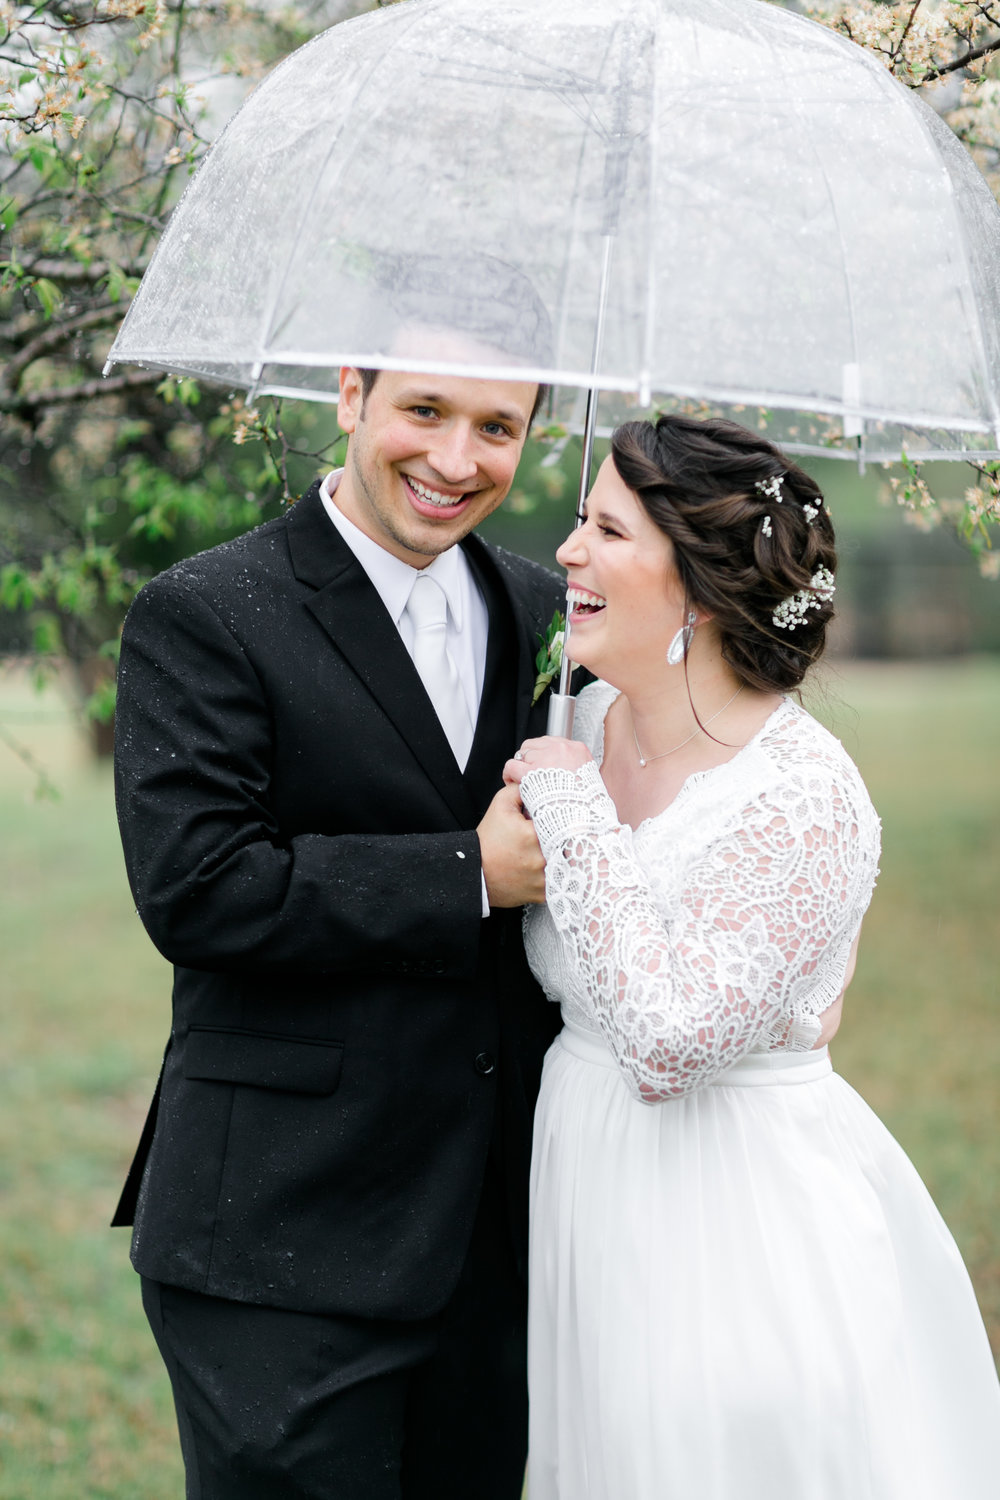 Austin_Texas_Fine_Art_Wedding_Photographer_Kayla_Snell_Photography_Antebellum_Oaks216.jpg